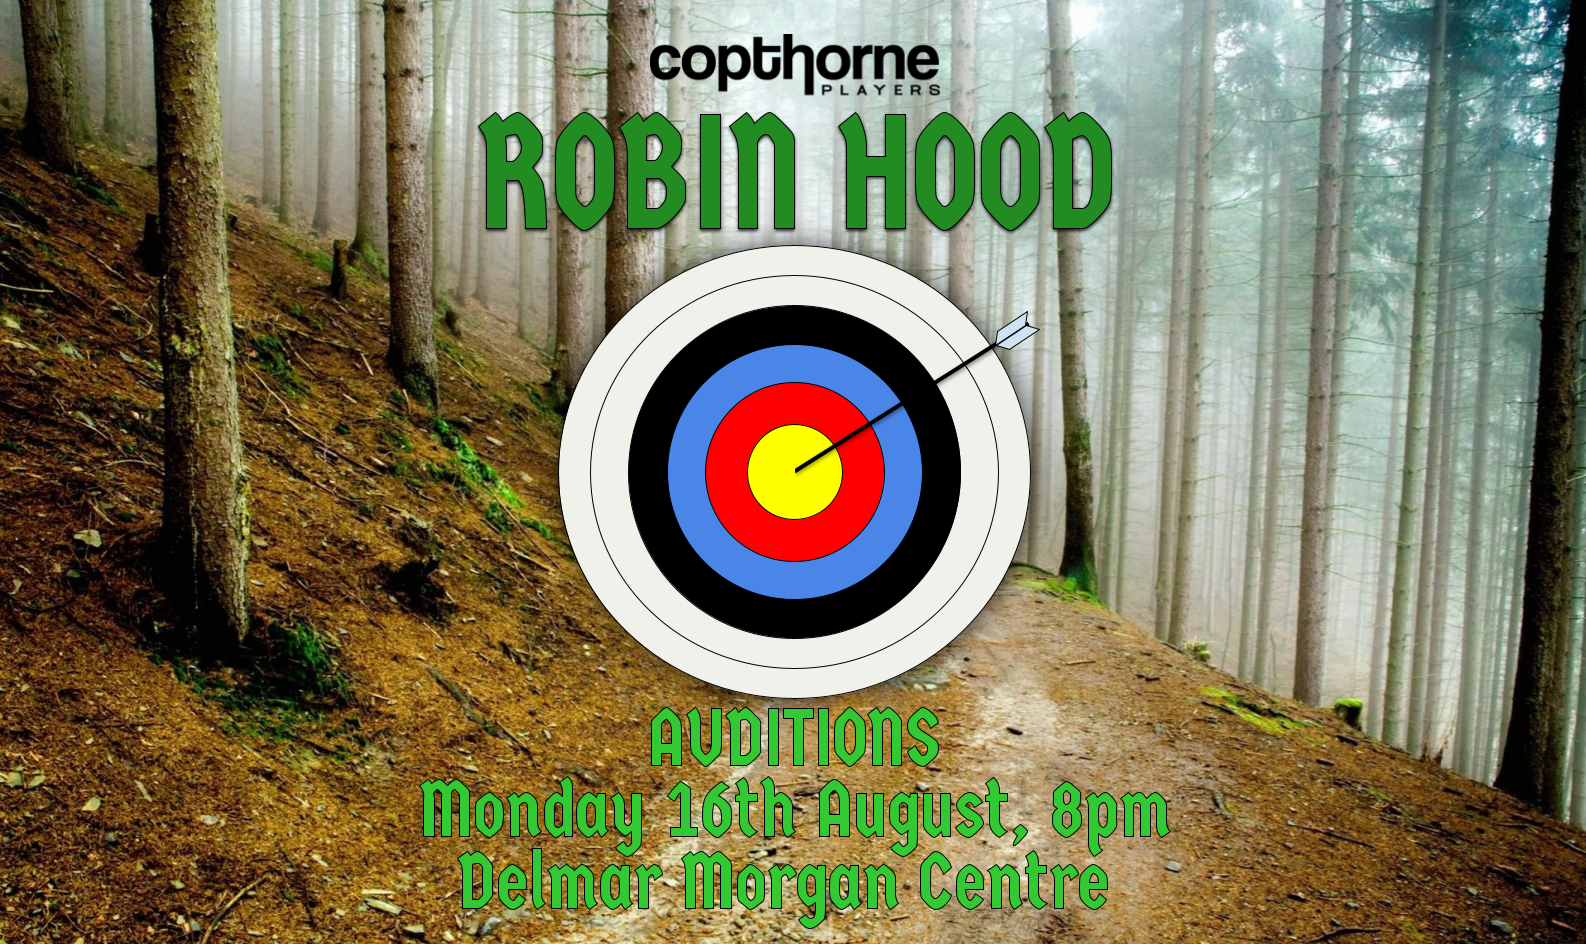 """A poster for the Robin Hood auditions. At the top of the image is the Copthorne Players logo. Below that, in green font, it says Robin Hood. Underneath that is a clipart image of an archery target, with an arrow hitting bullseye. Below that, in lighter green font, it says """"Auditions"""" Monday 16th August, 8pm. Delmar Morgan Centre."""" The whole image is on a background of a misty forest scene."""